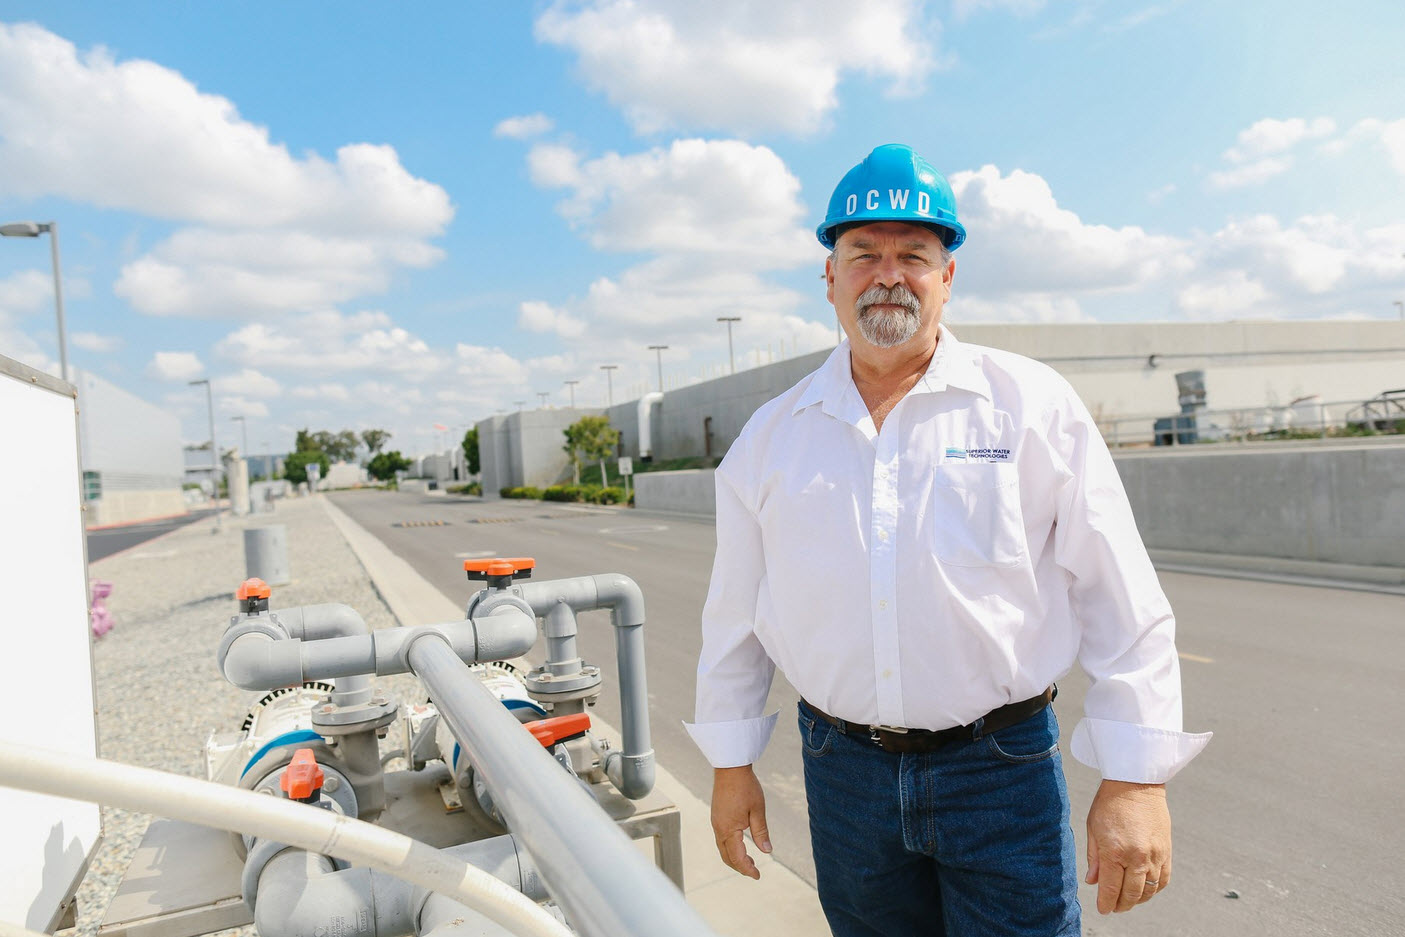 Superior Water Technologies obtain VC funding to support R&D, hiring and business growth